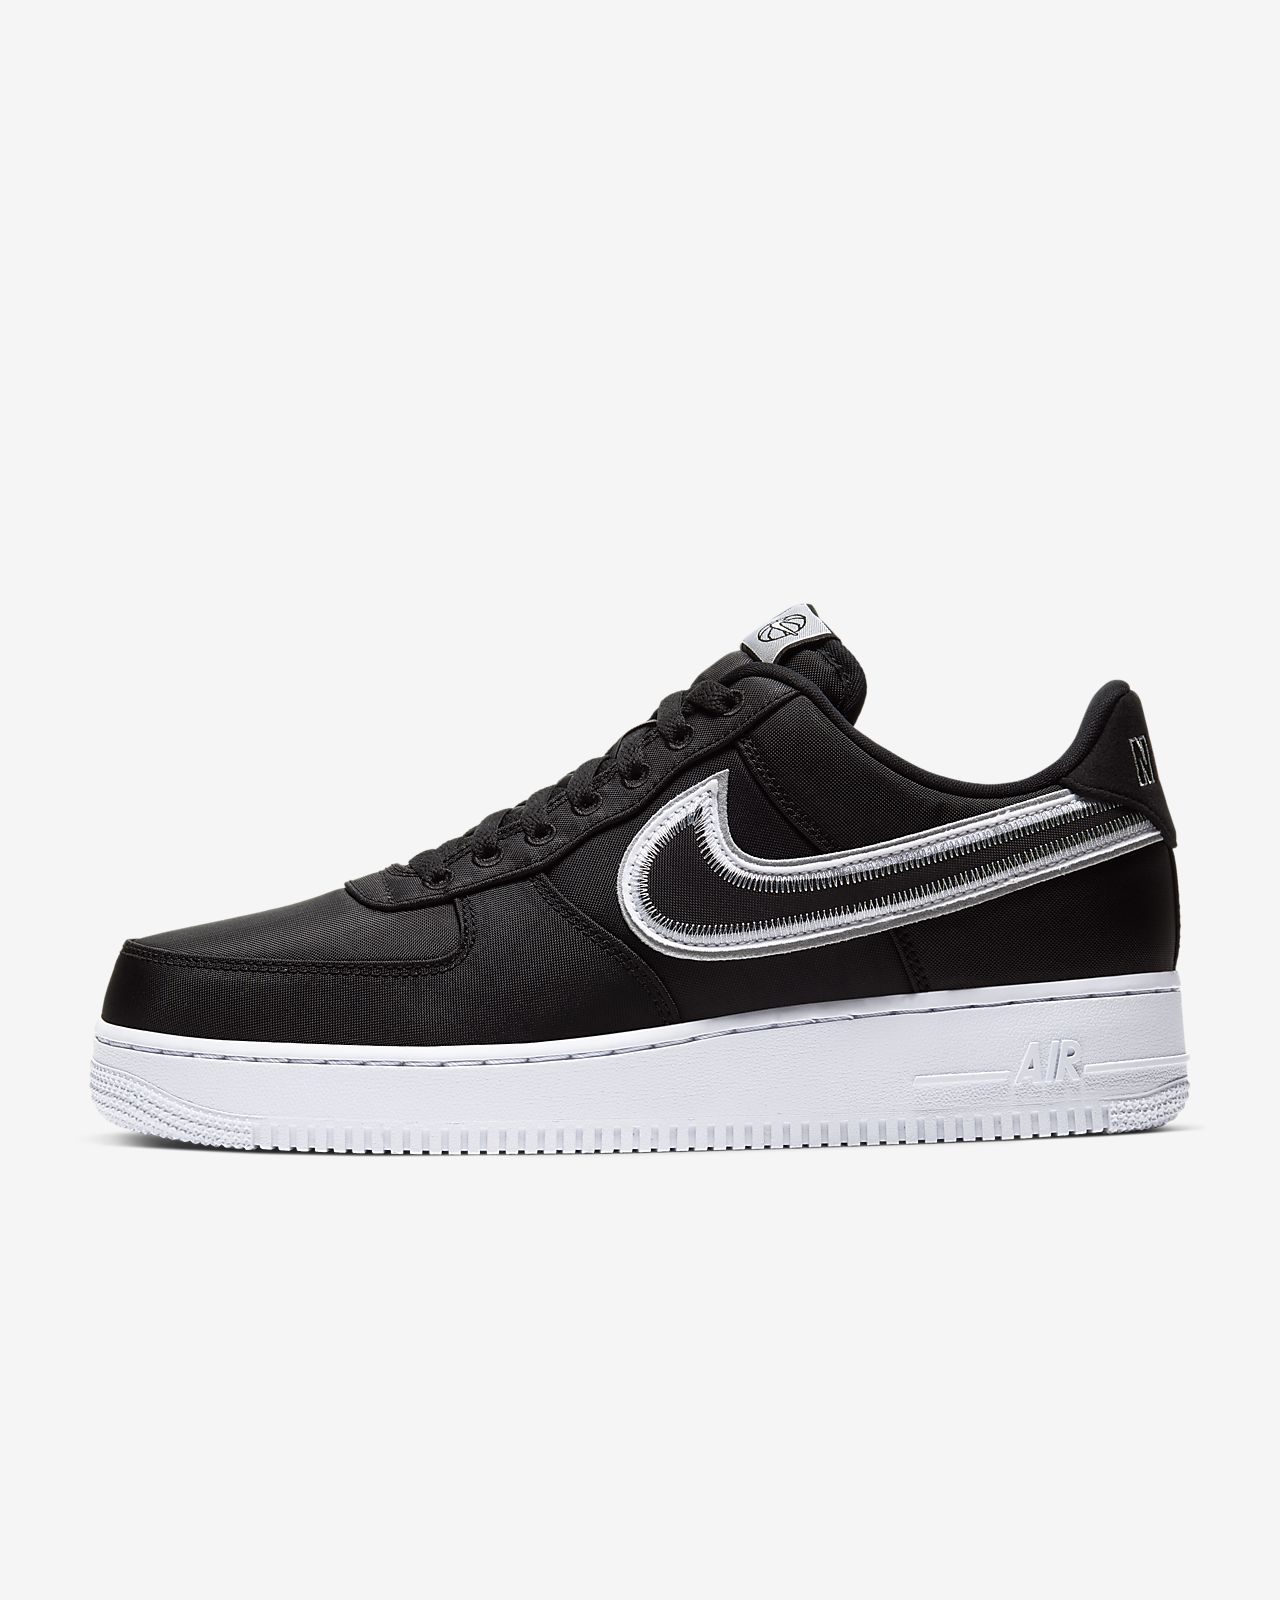 nike air force 1 lv8 uomo nero